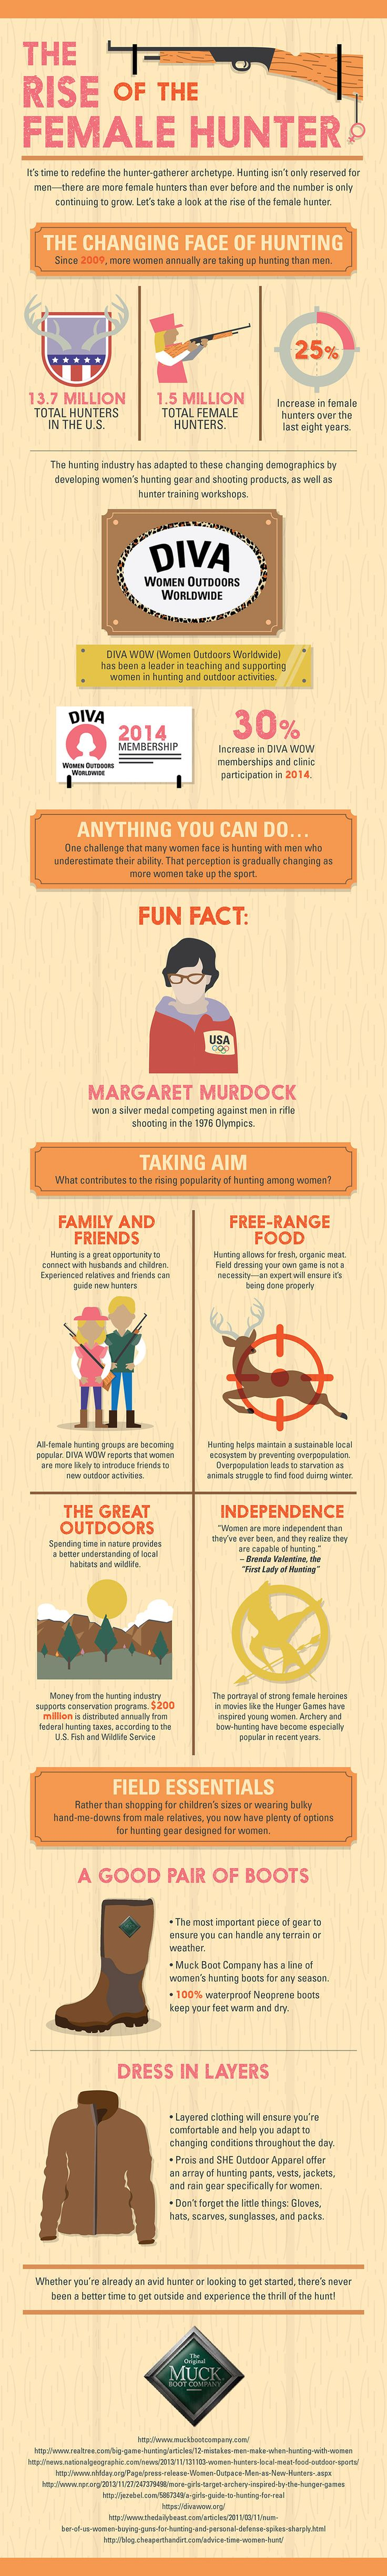 The Rise of the Female Hunters #infographic #Hunting #OutdoorSports #Women